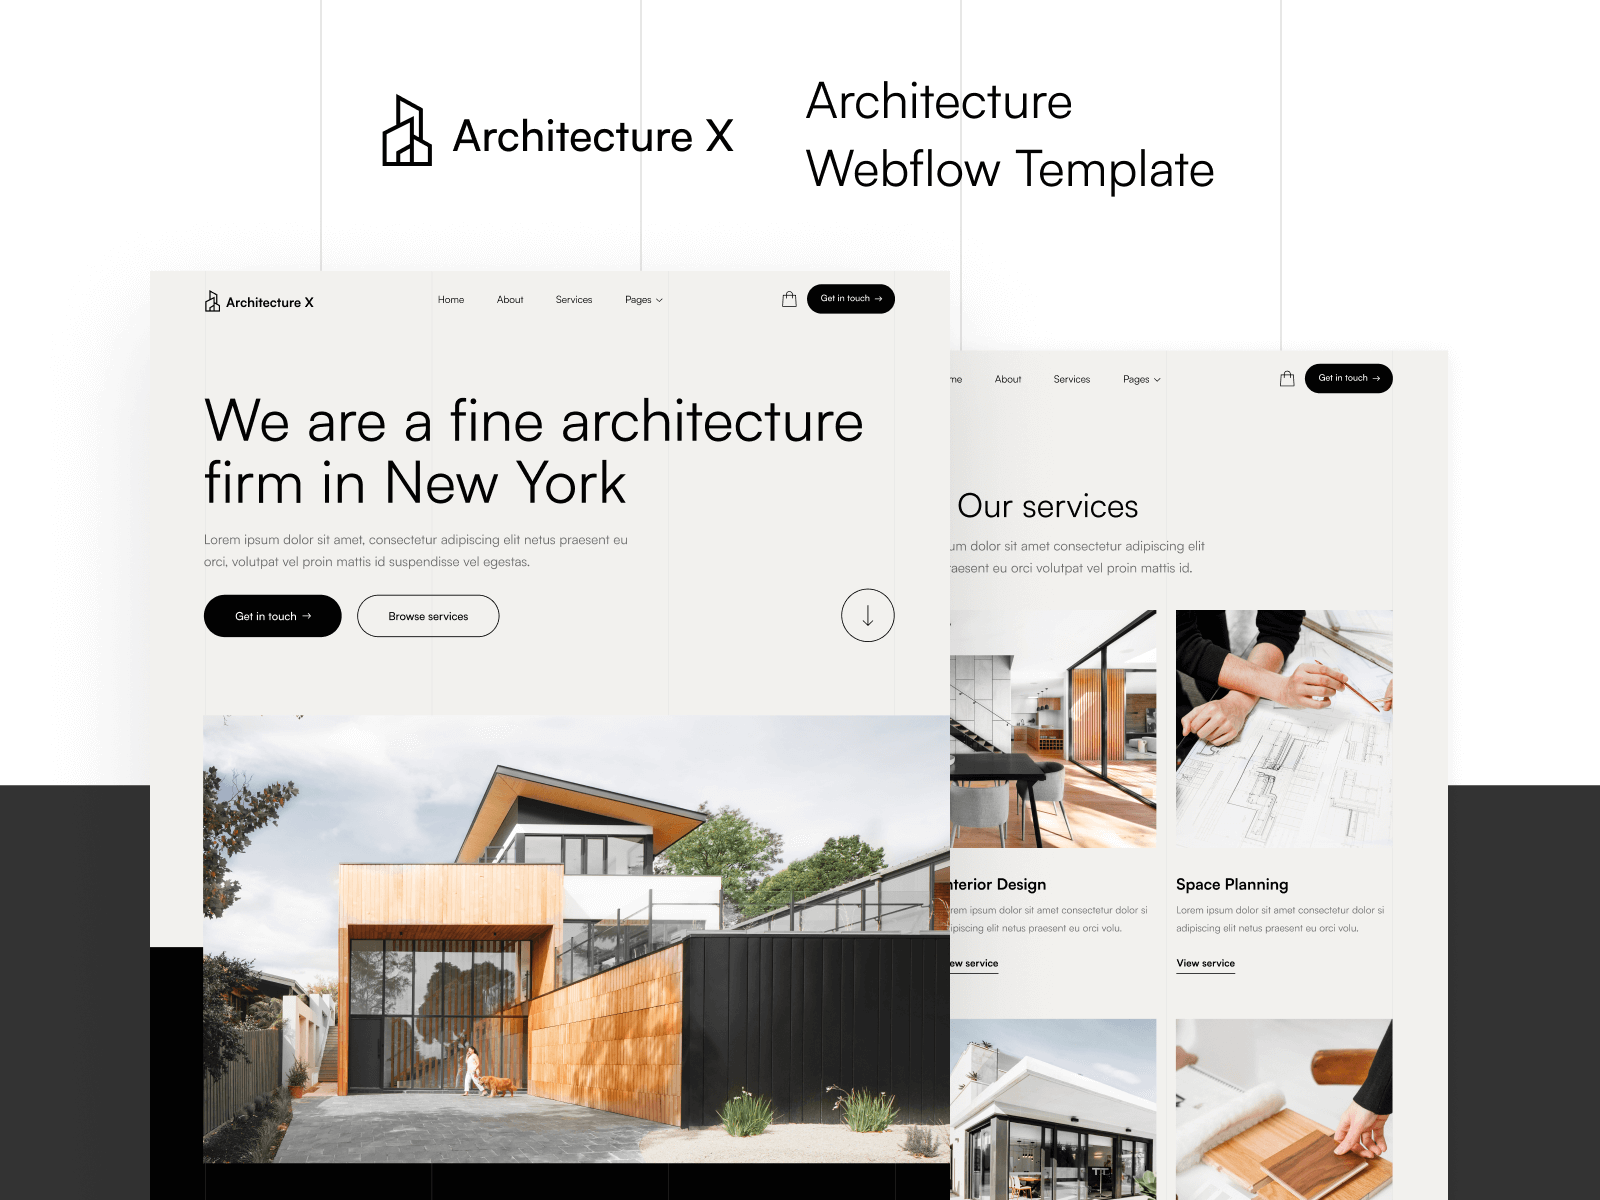 Architecture Webflow Template